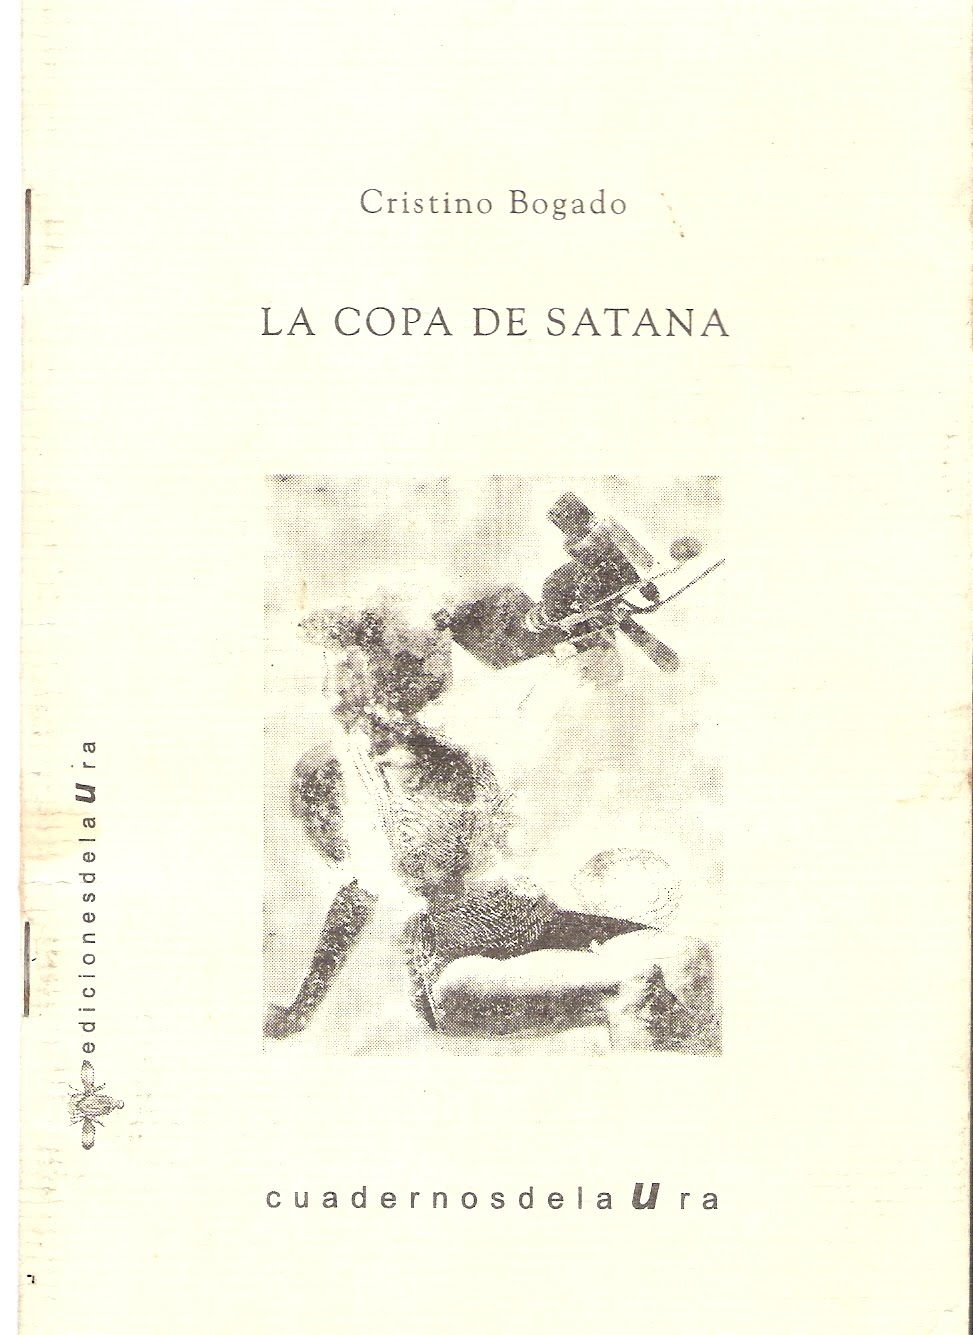 La Copa de Satana